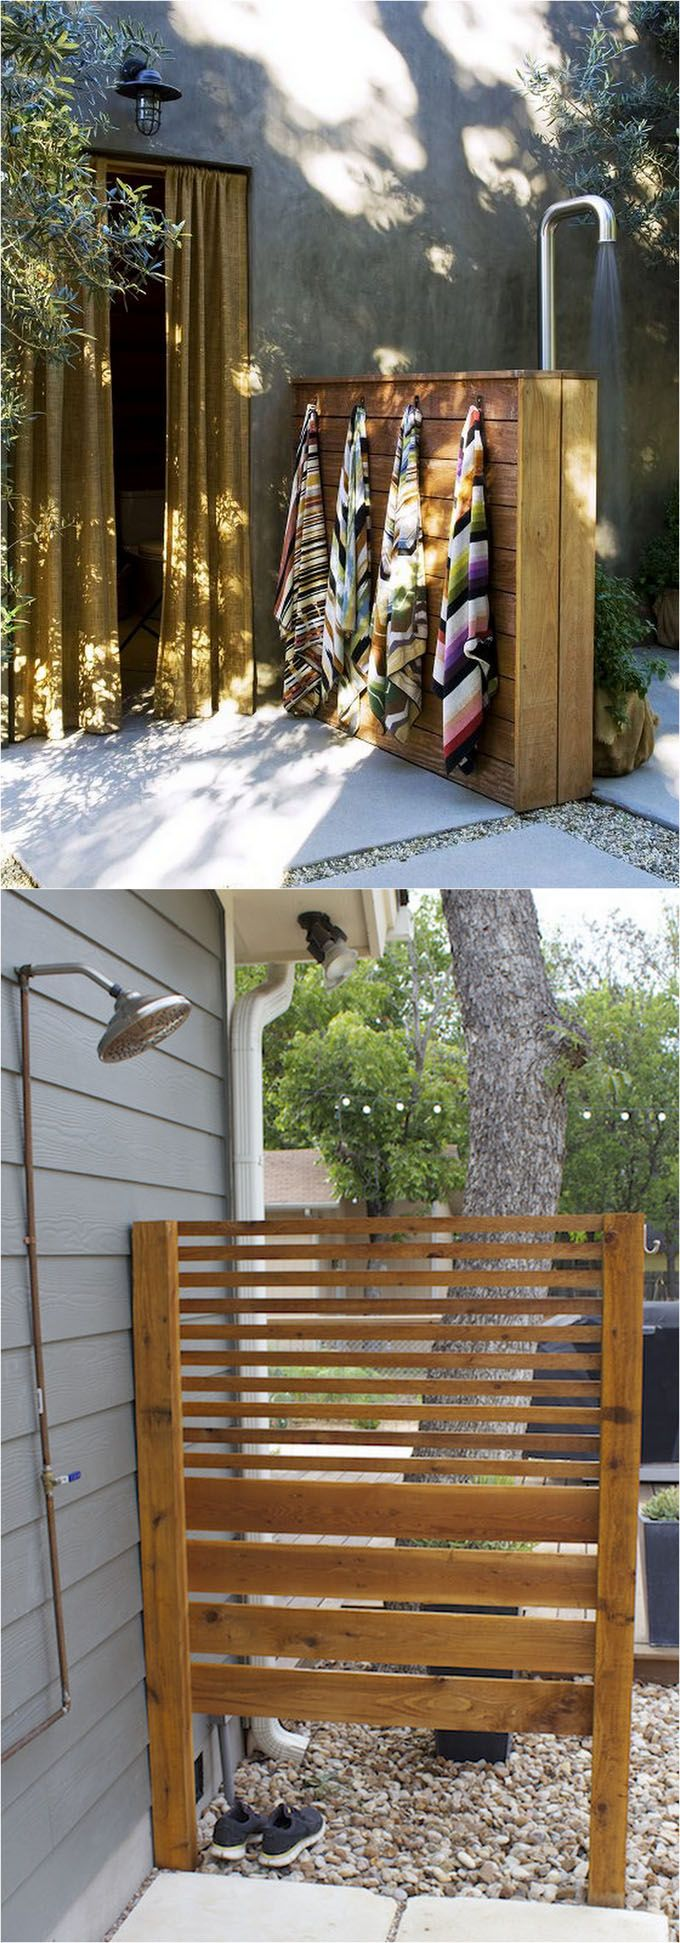 32 DIY outdoor showers: how to build enclosures with simple materials, best outdoor shower fixtures, creative designs and more! - apieceofrainbow.com